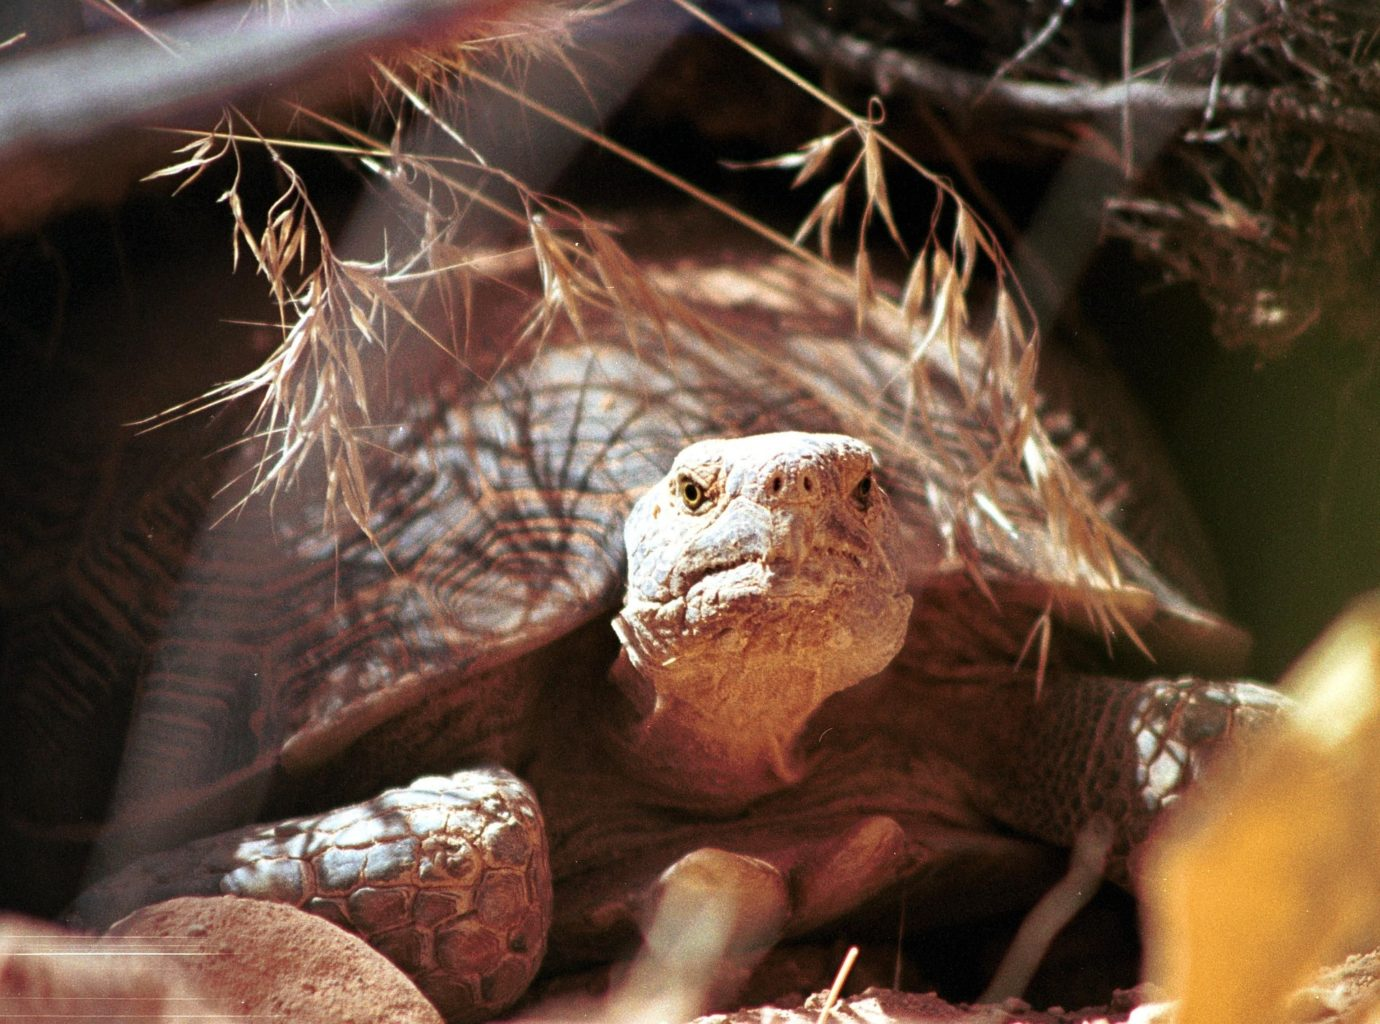 Background is the desert, browns, tans, yellows. The face and front legs of a Desert Tortoise, with its shell.